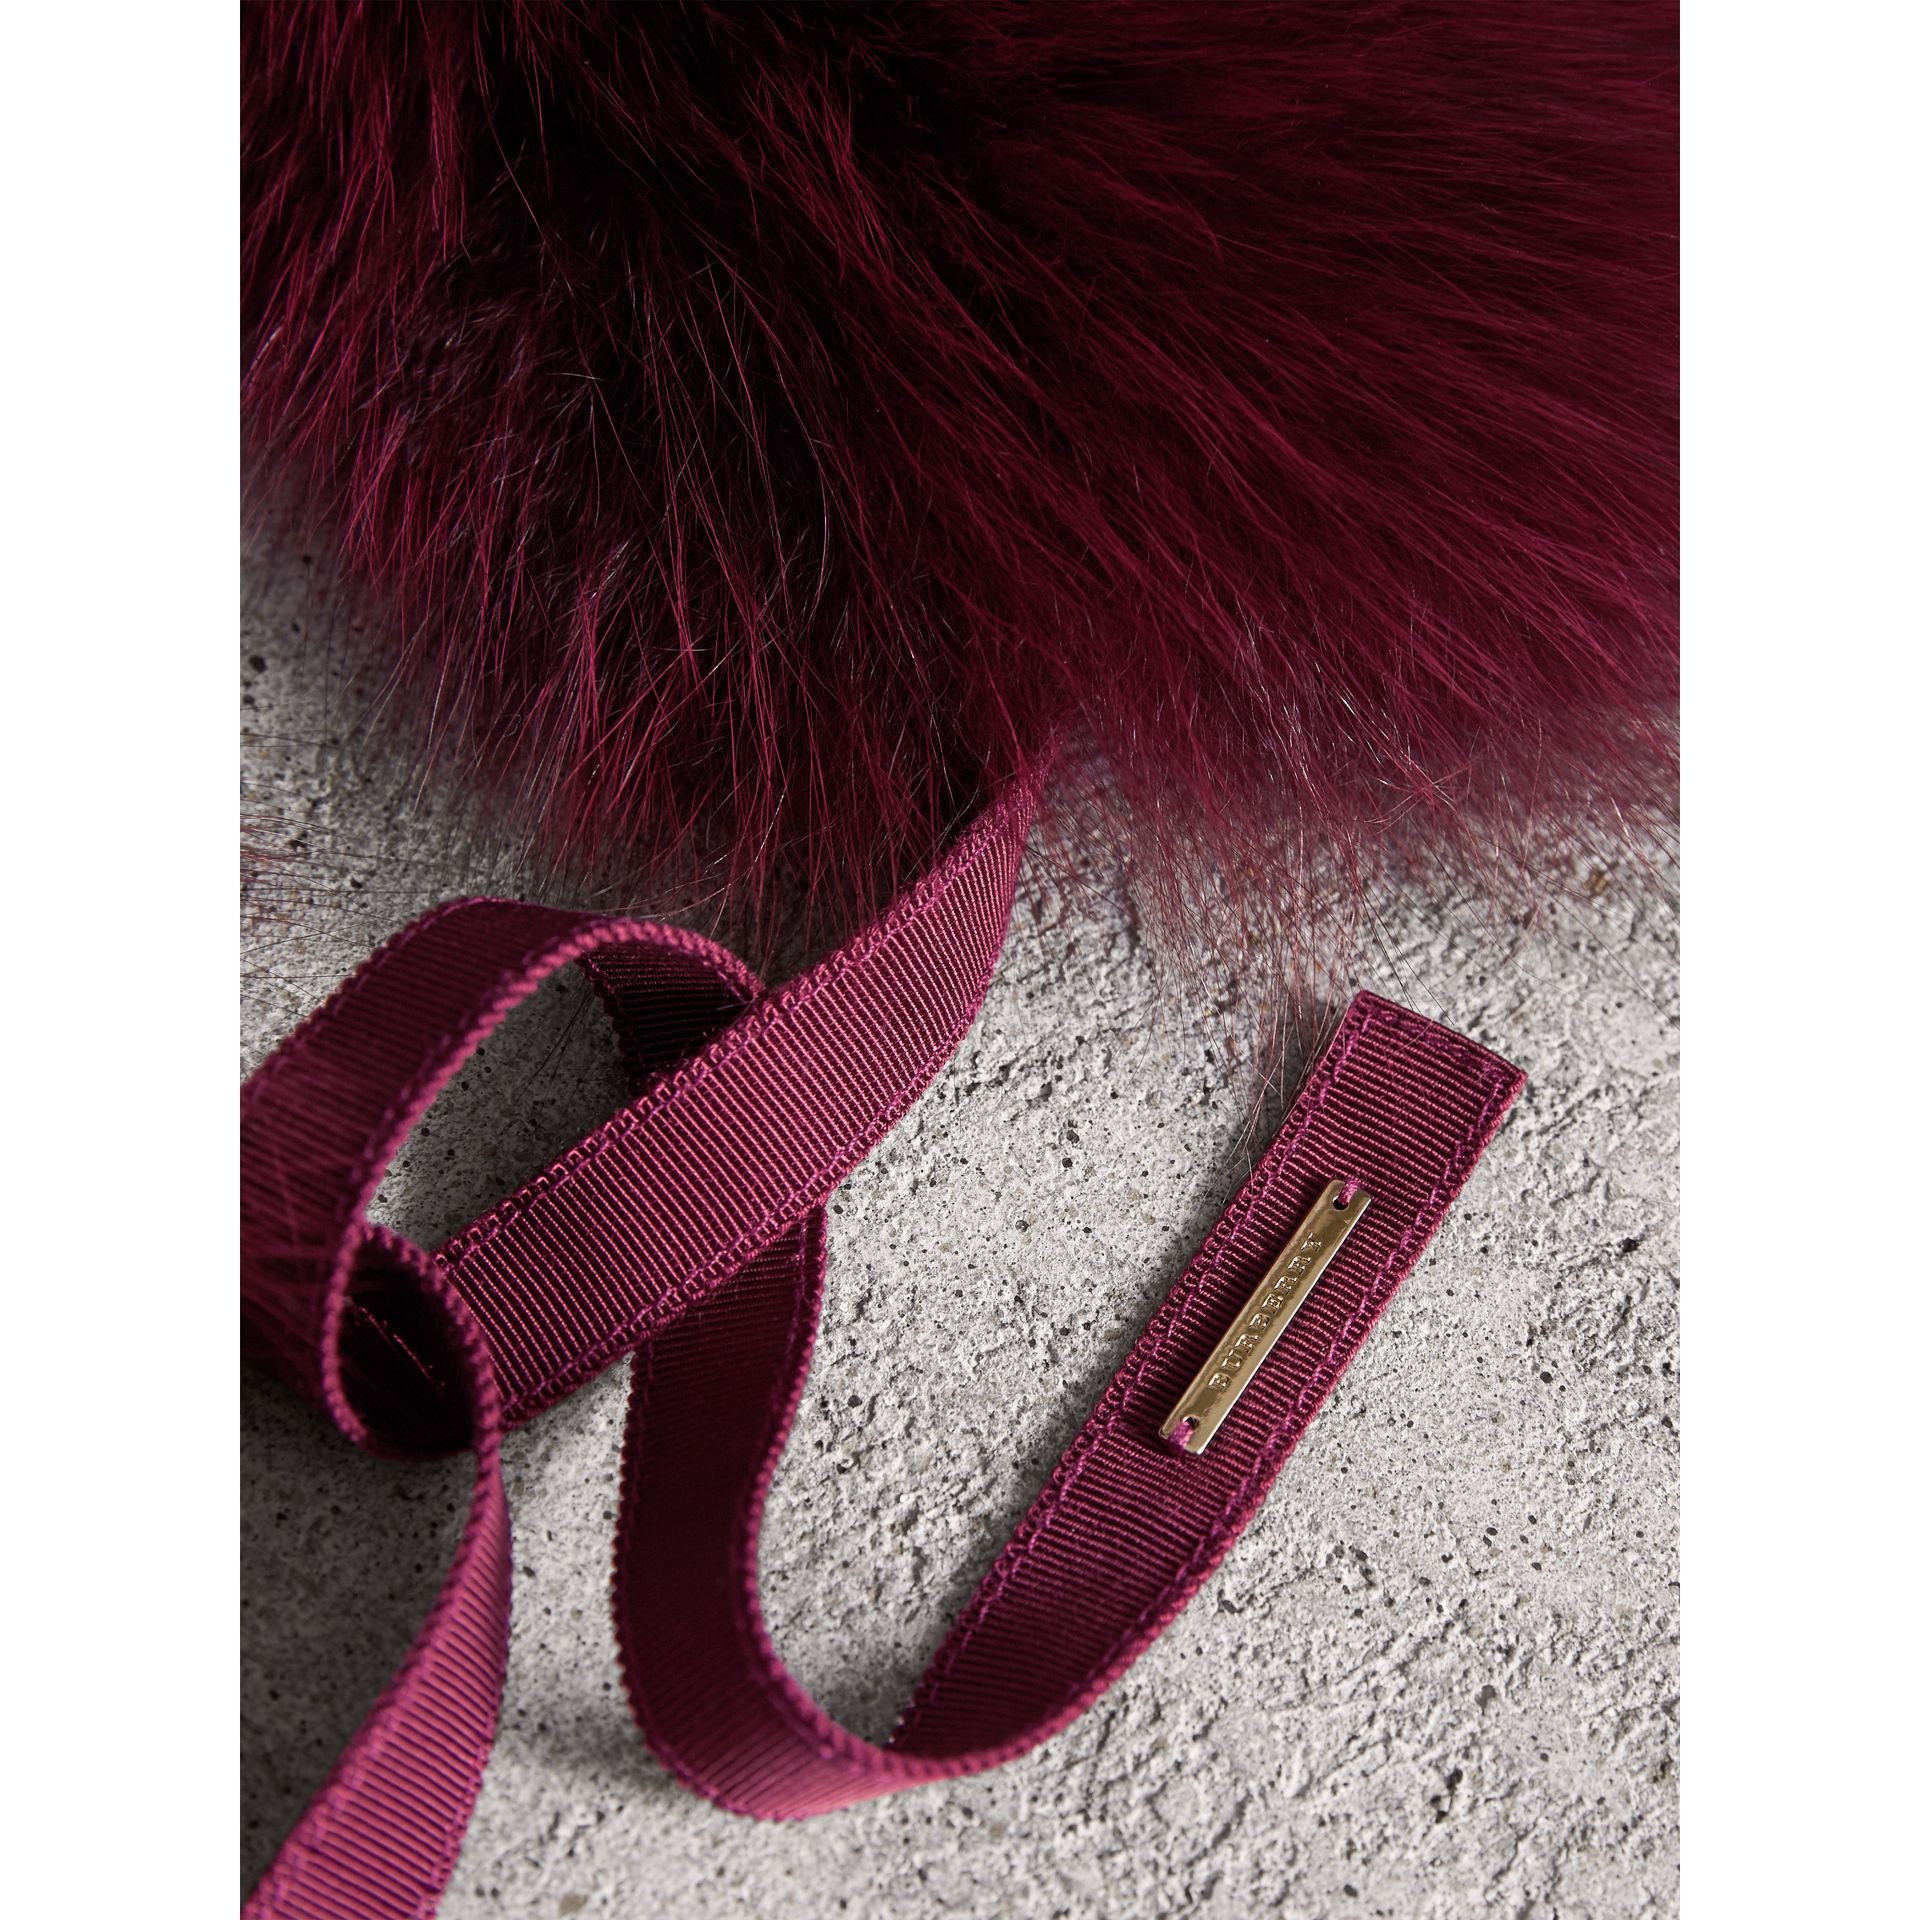 Fox Fur Collar with Check Cashmere Lining in Plum - Women | Burberry Canada - gallery image 1